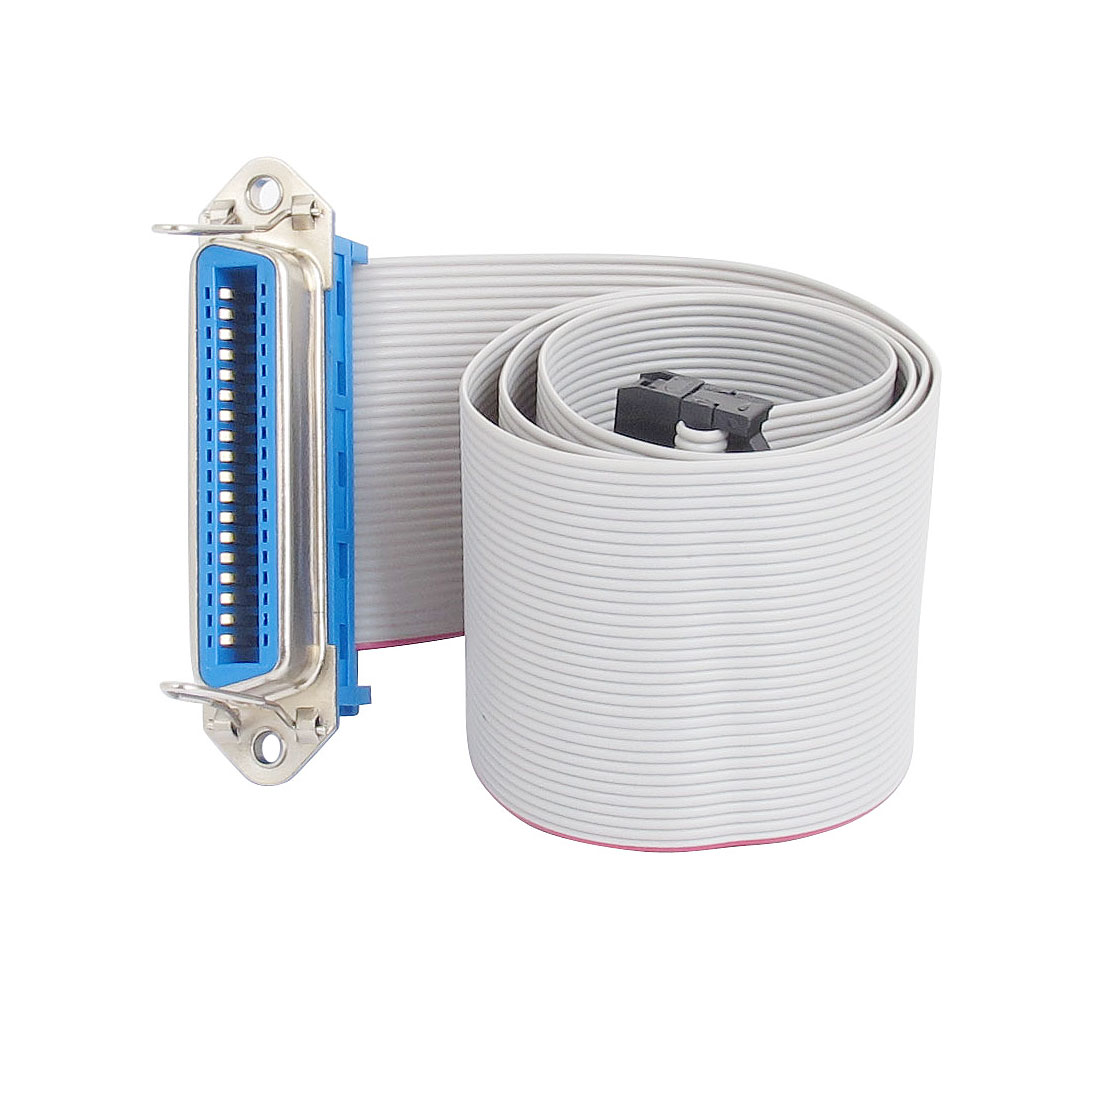 Female/Female IDC 34 Pin Connector Centronics 36 Pin Crimp Flat Motherboard Extension Ribbon Cable 23""